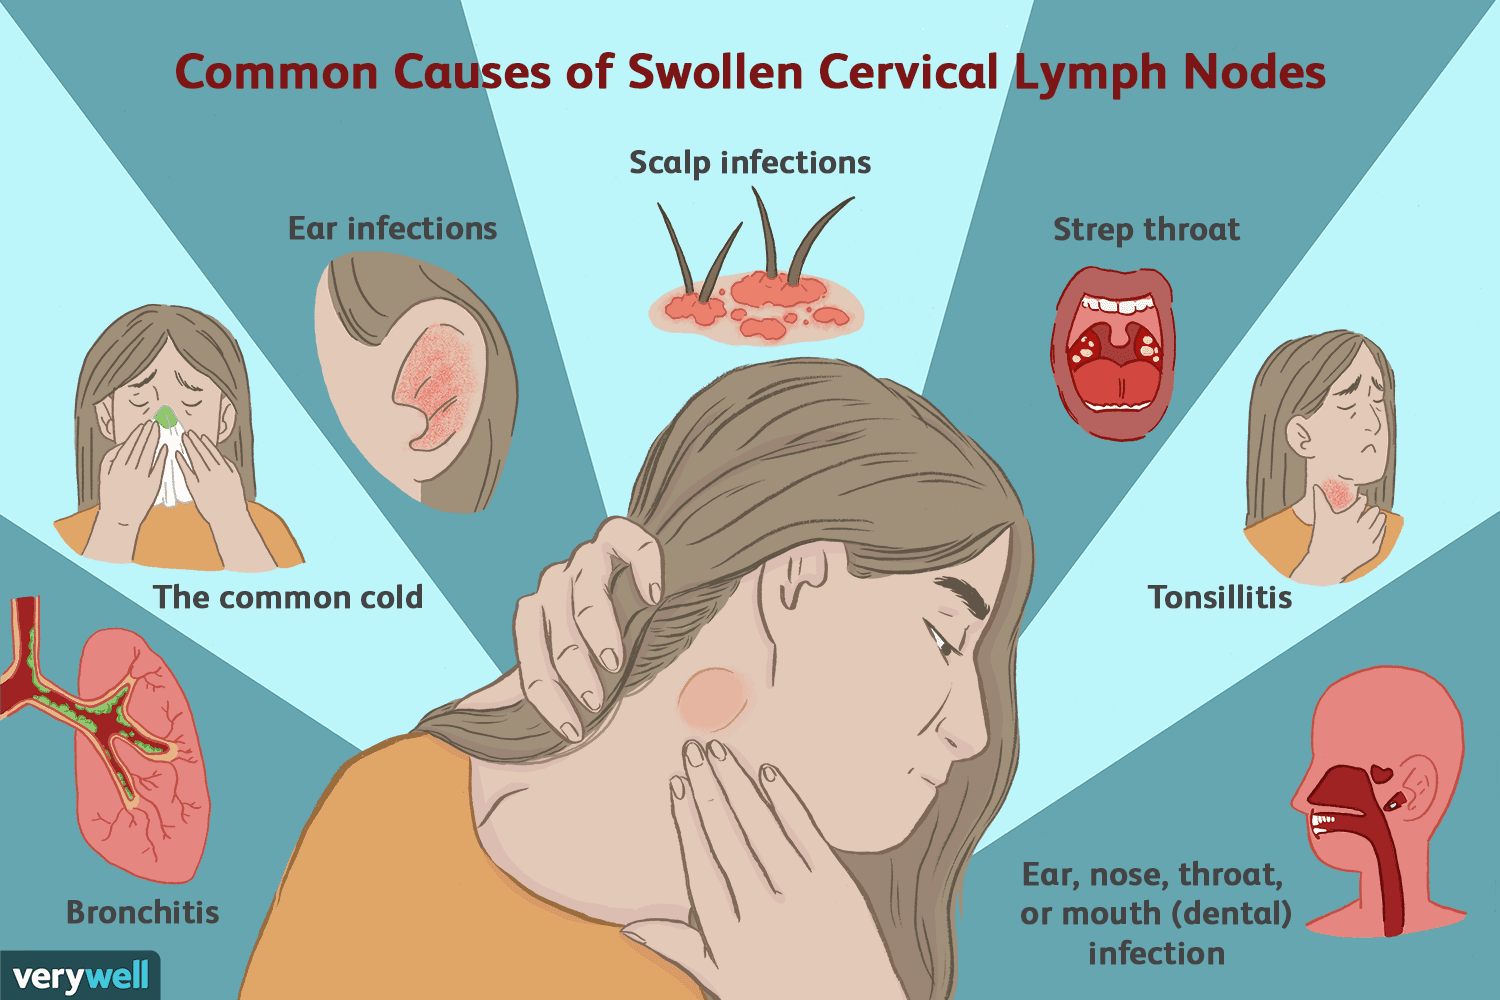 Enlarged Cervical Lymph Nodes